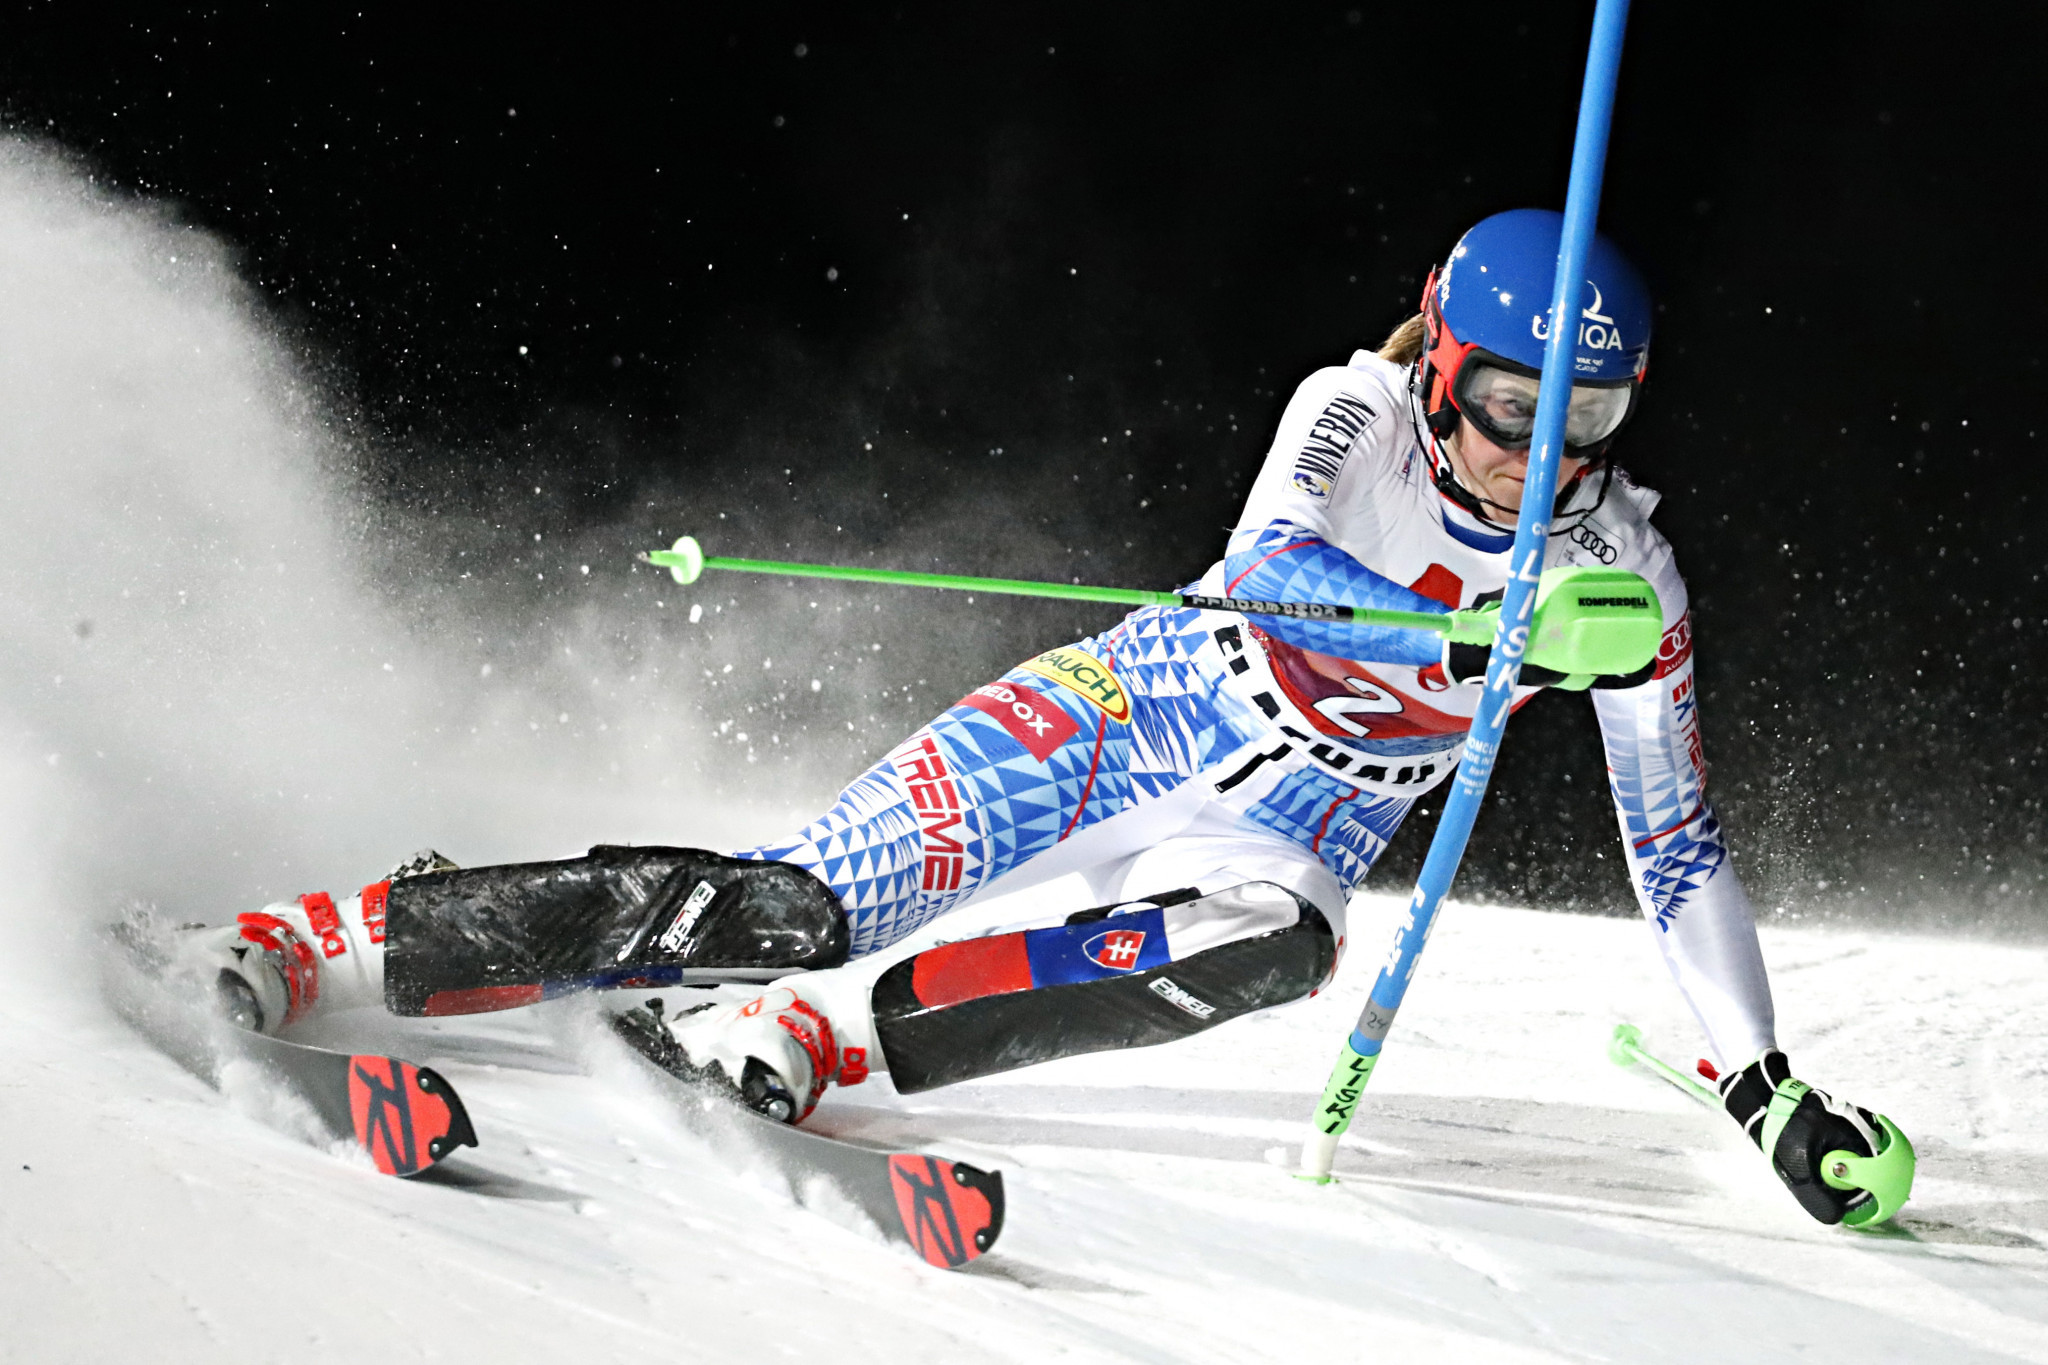 Slovakia's Petra Vlhová was in fine form at the FIS Alpine Skiing World Cup in Flachau ©Getty Images